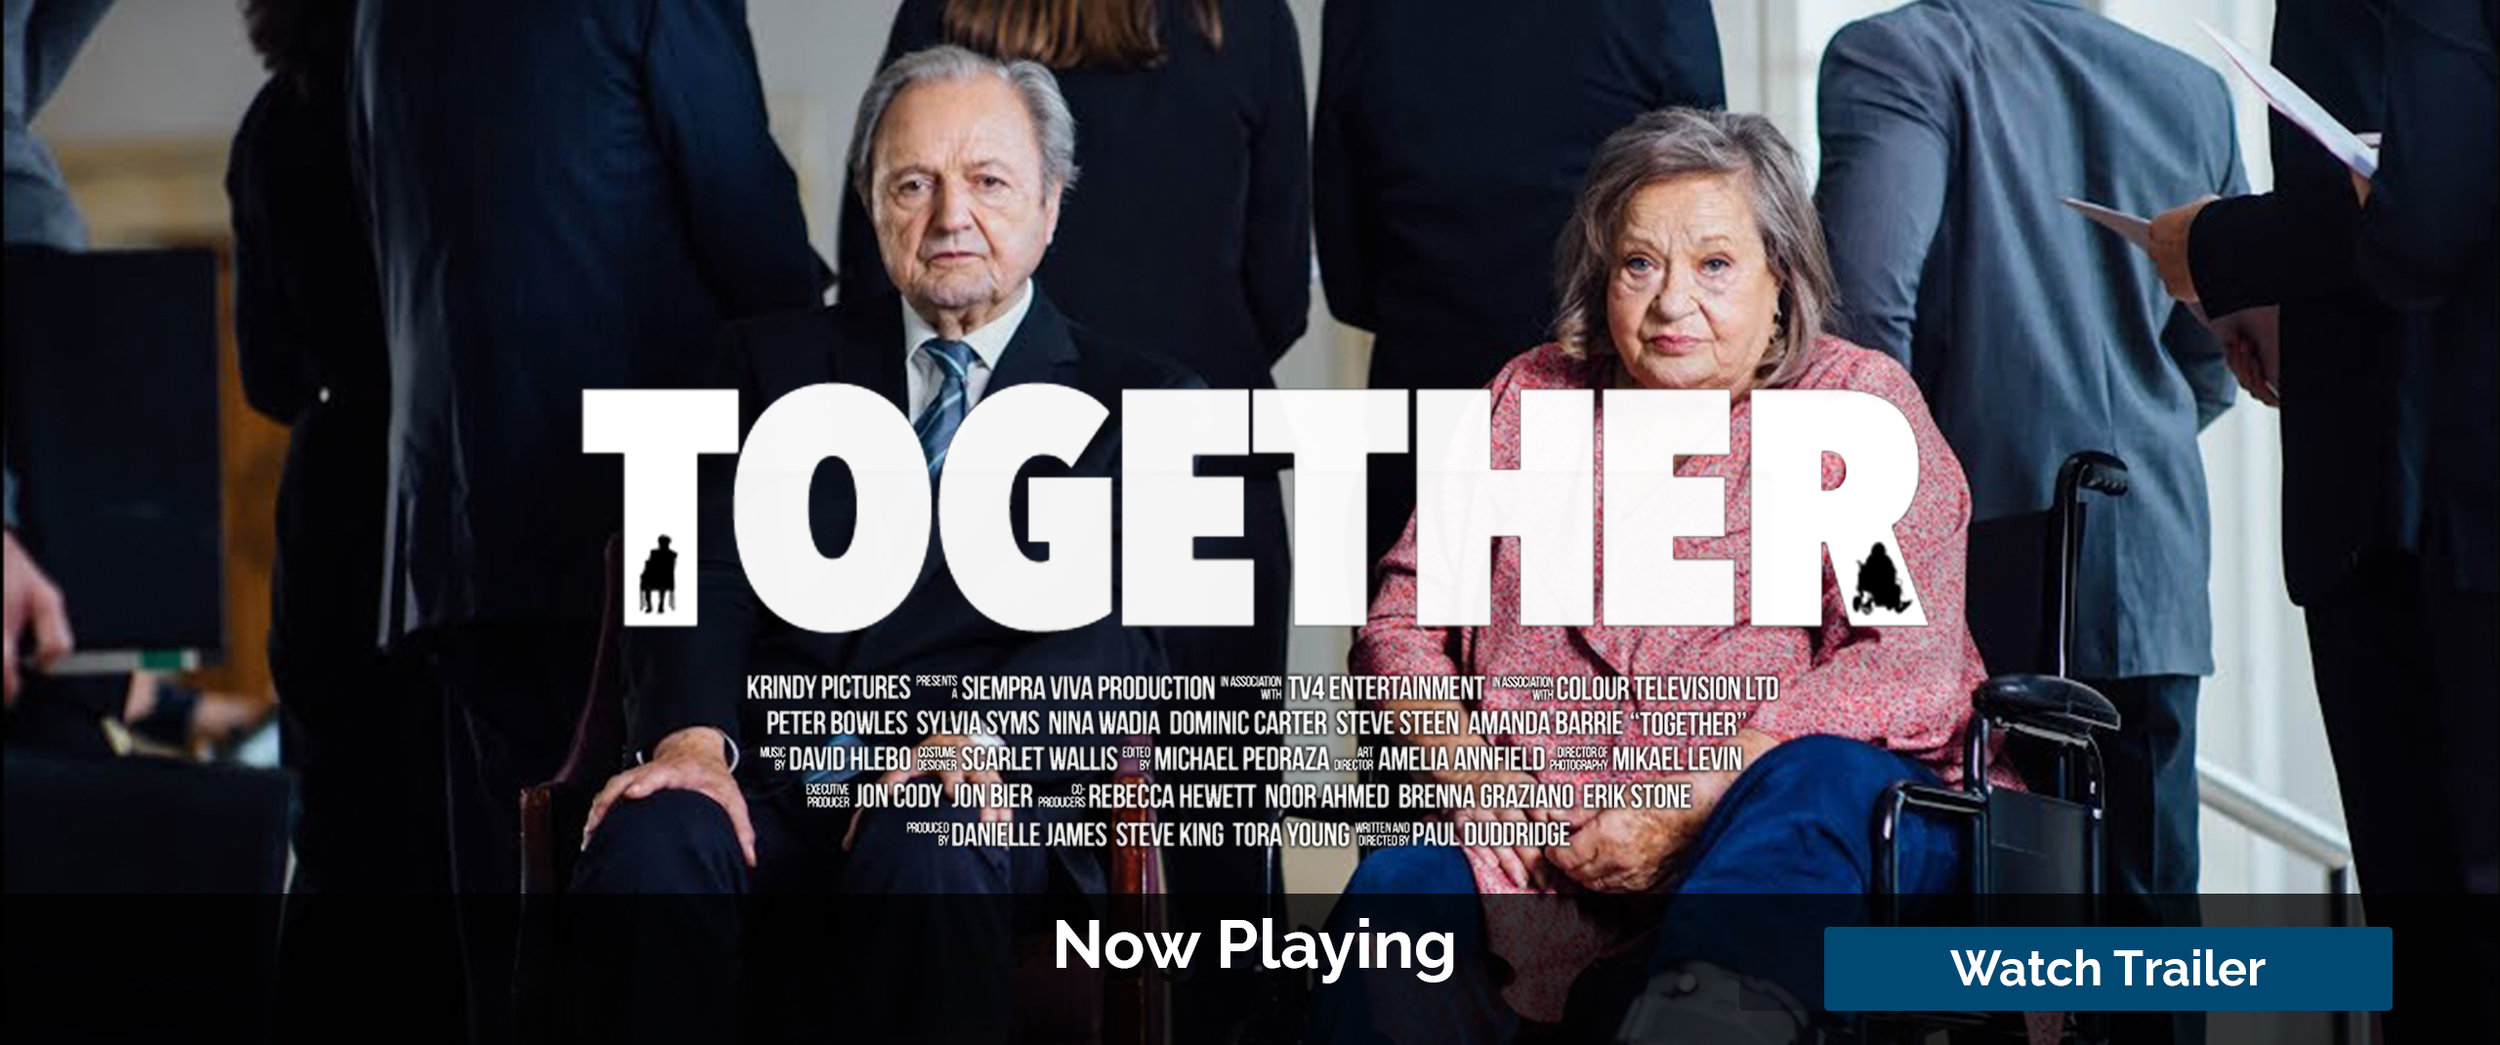 Together-NowPlaying.jpg